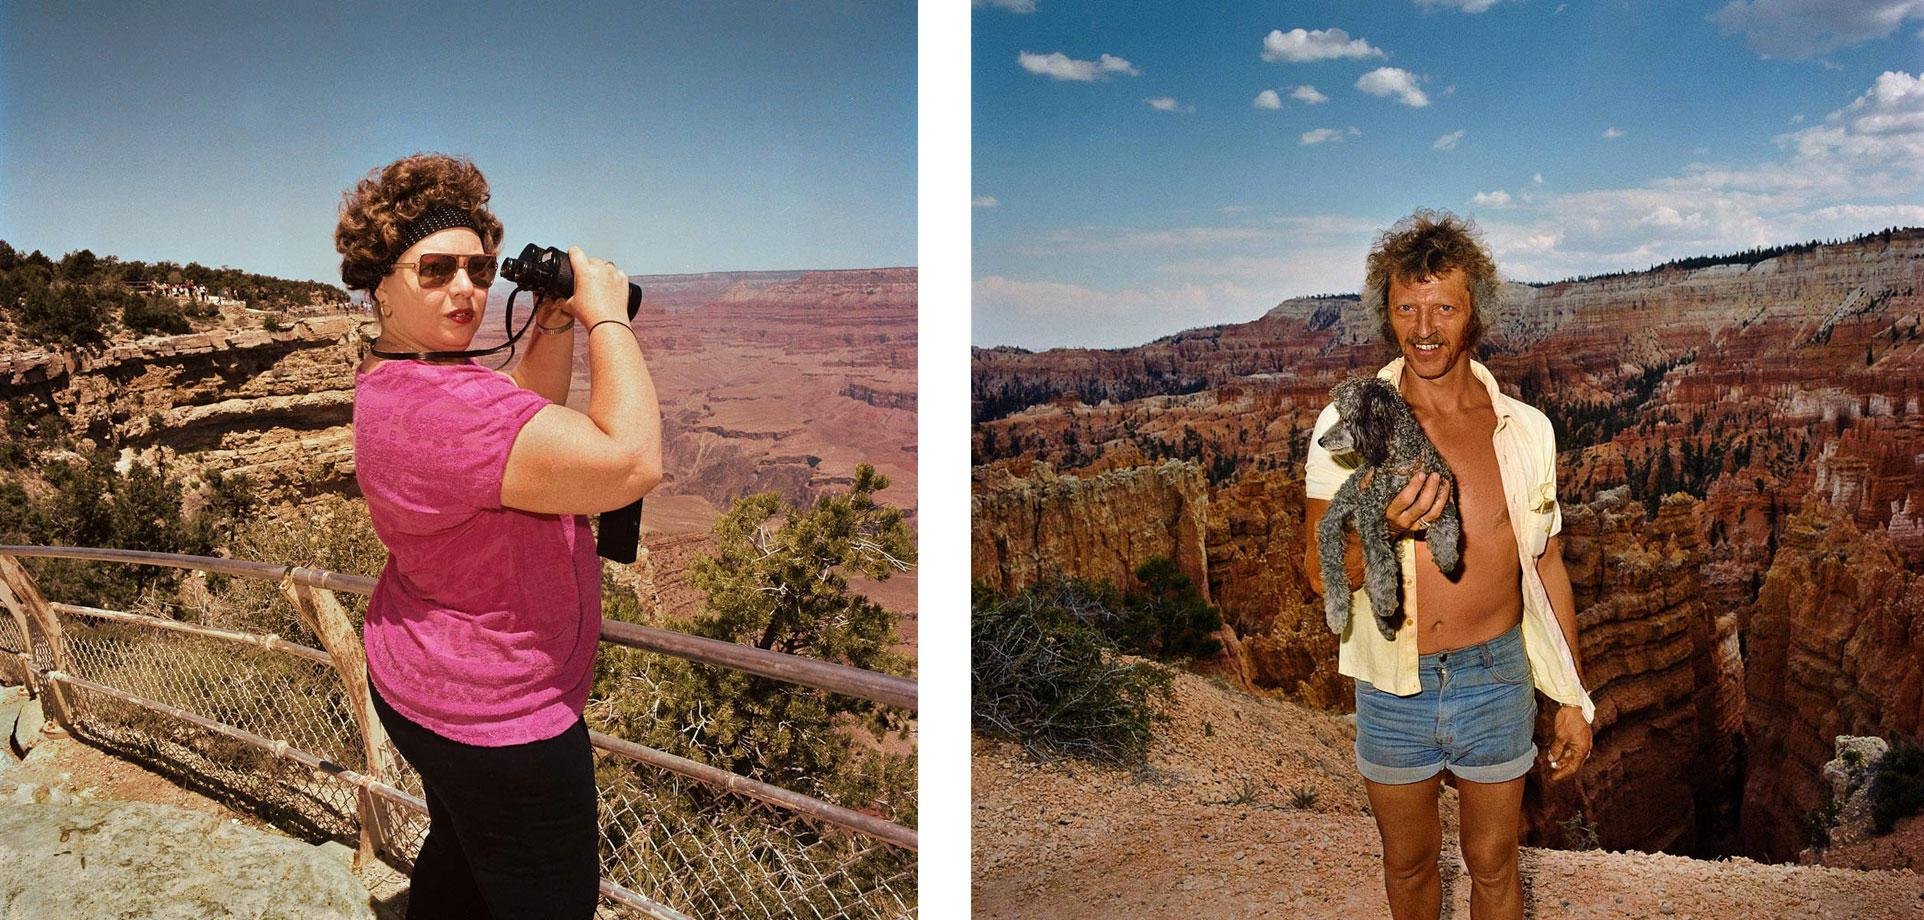 Woman with Bincoculars at South Rim Grand Canyon National Park, AZ. 1980 (l) Man with Dog at Sunset Point Bryce Canyon National Park, UT. 1980 (r)